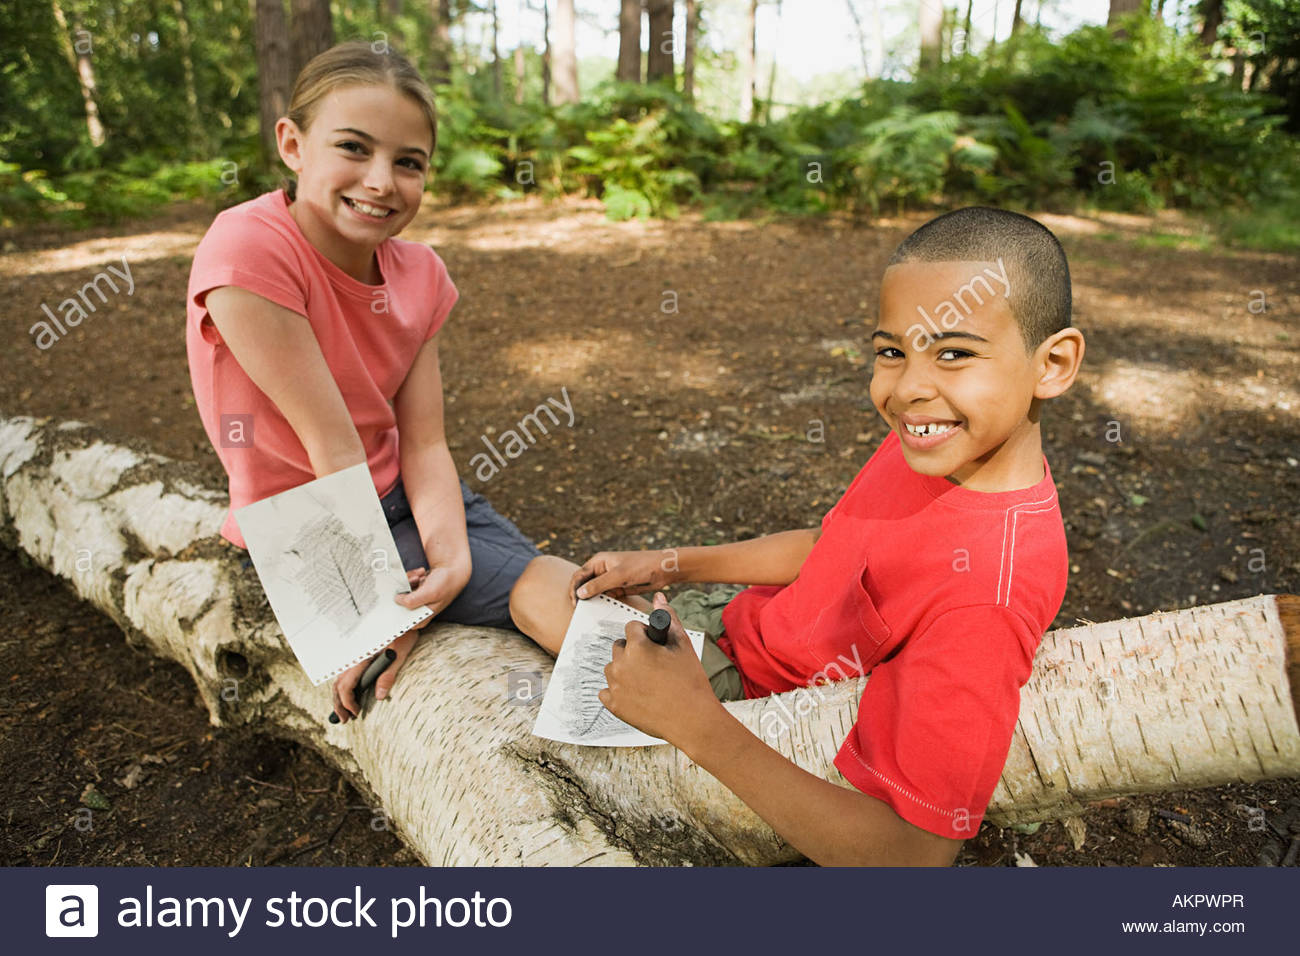 Boy and girl with drawings - Stock Image